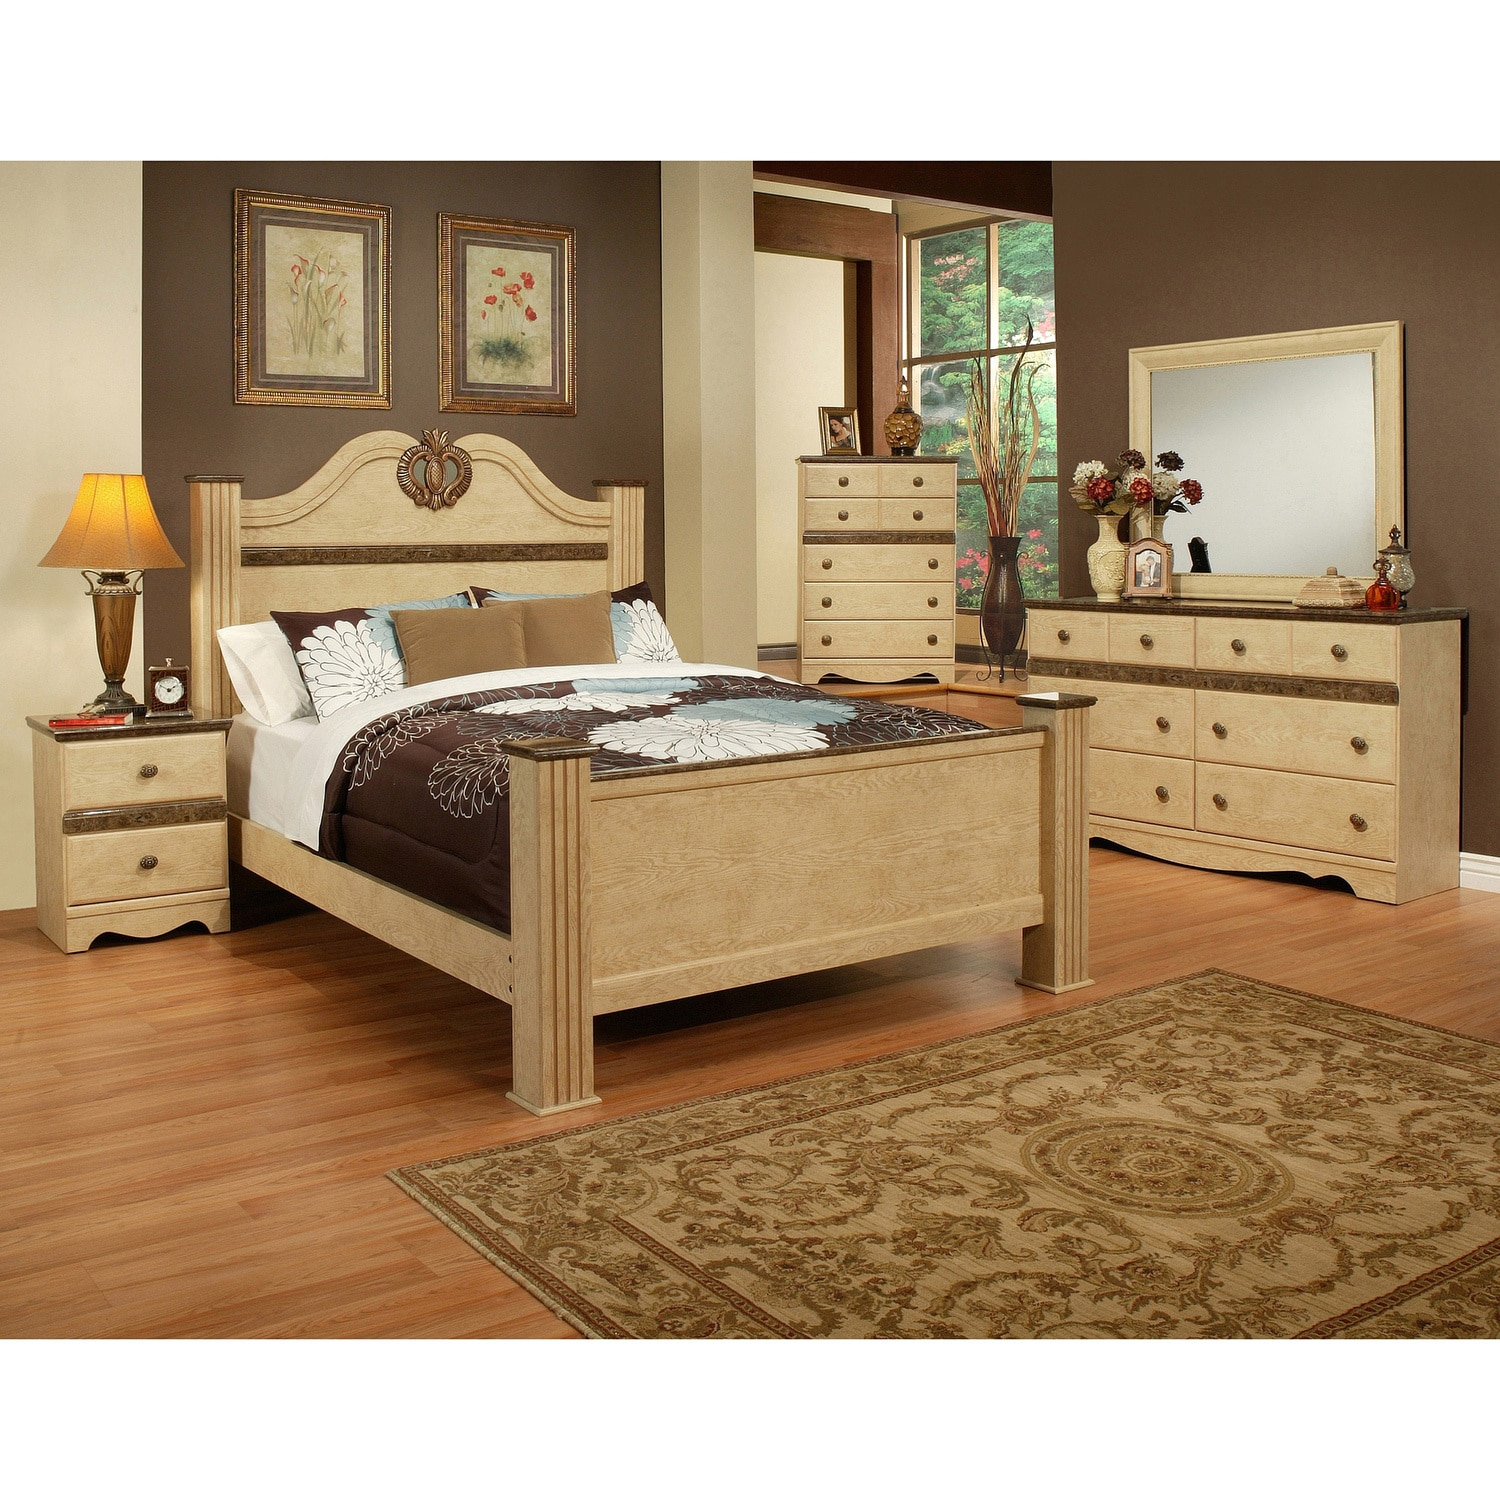 sandberg furniture casa blanca bedroom set overstock shopping big